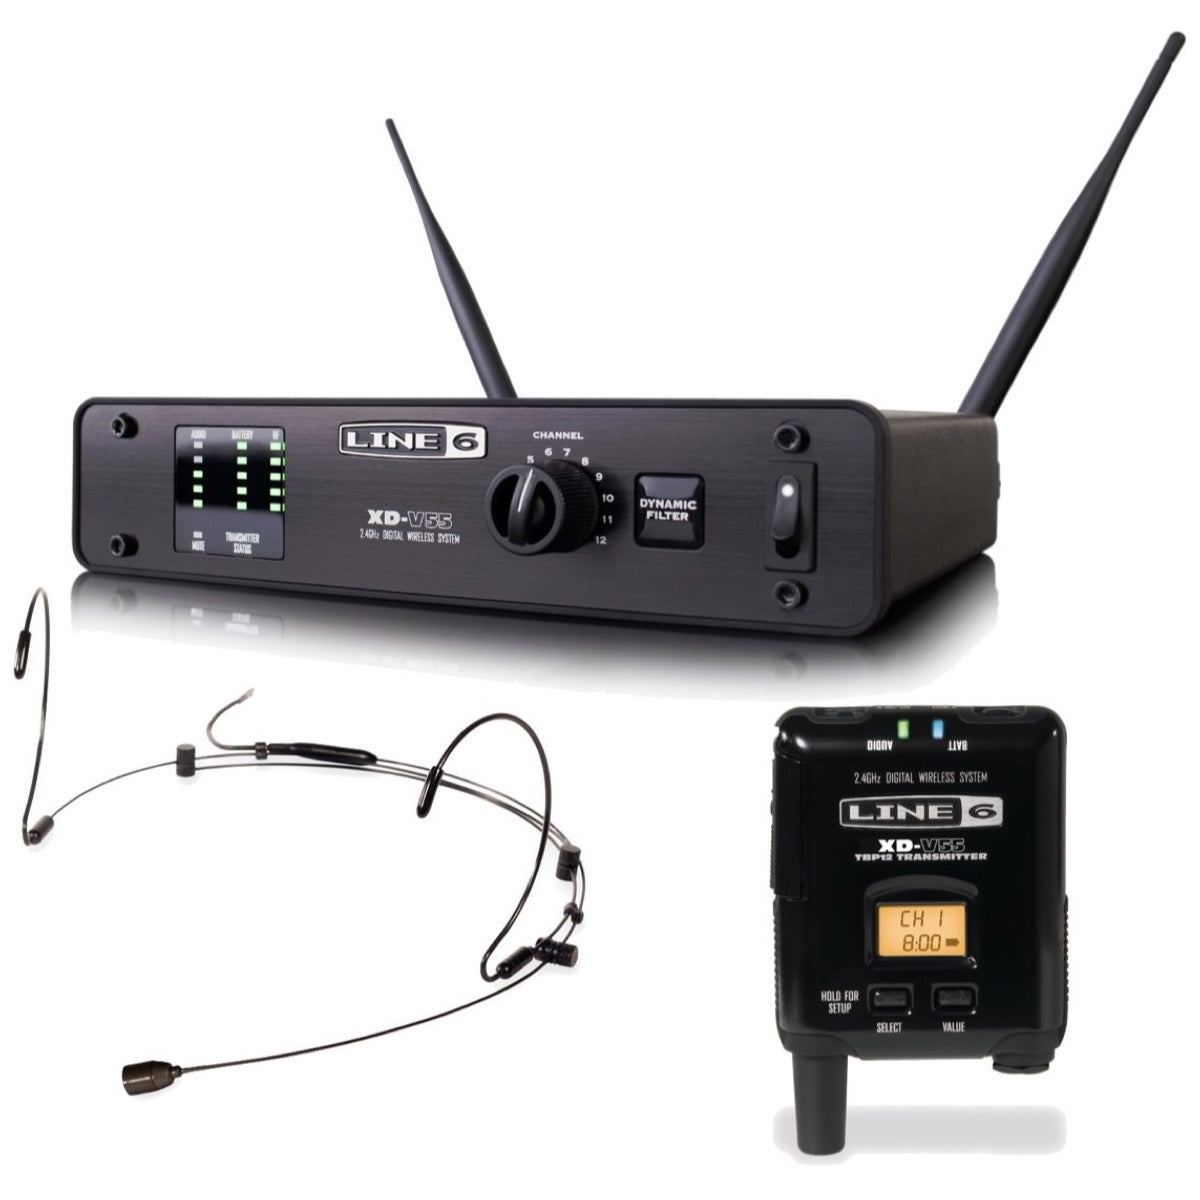 Line 6 XD-V55HS Digital Headset Wireless Microphone System, Tan Headset, 2.4 GHz